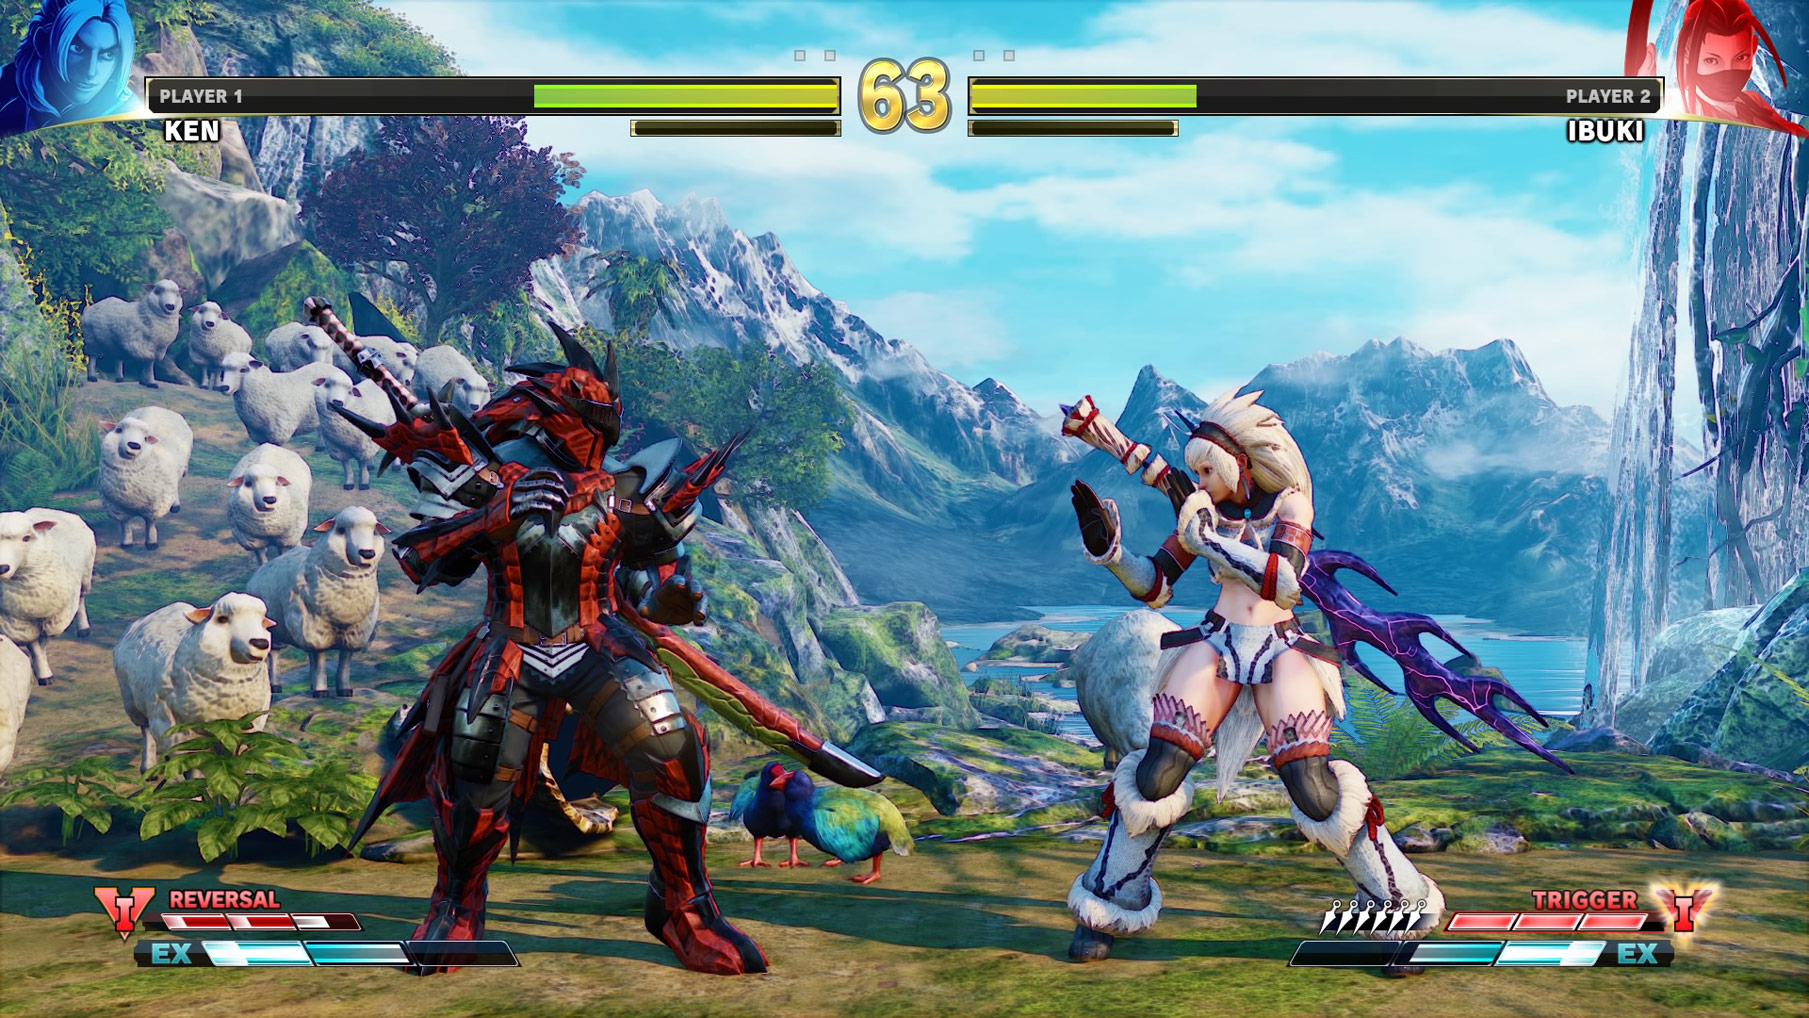 Monster Hunter Costumes Street Fighter 5 6 out of 12 image gallery